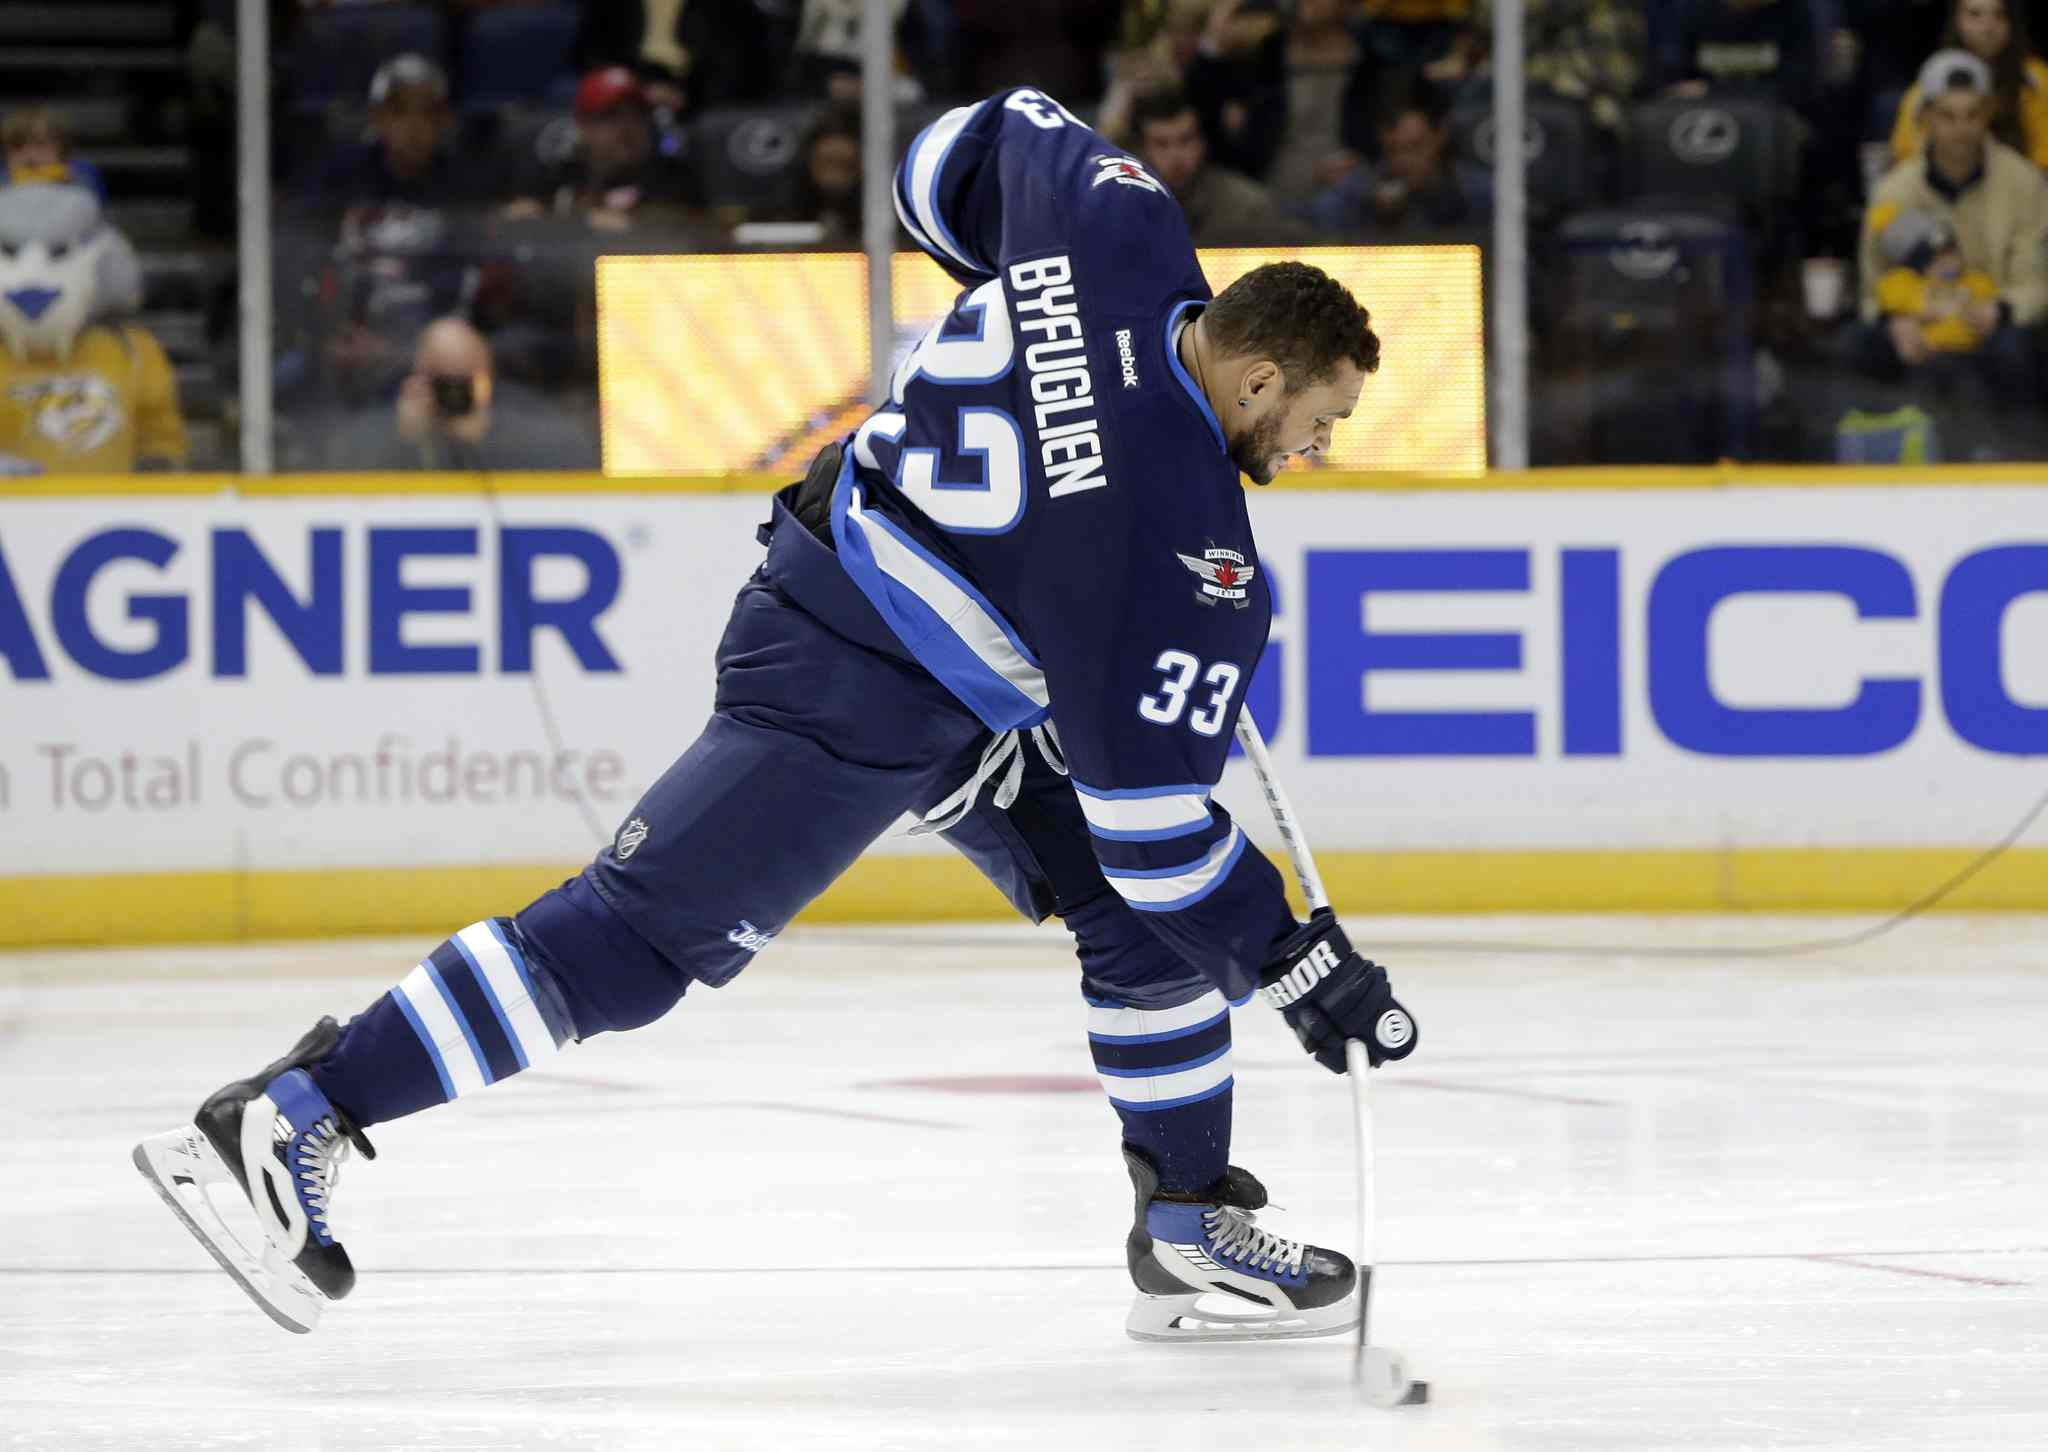 Winnipeg Jets defenseman Dustin Byfuglien (33) competes in the hardest shot competition at the NHL hockey All-Star game skills competition Saturday in Nashville.